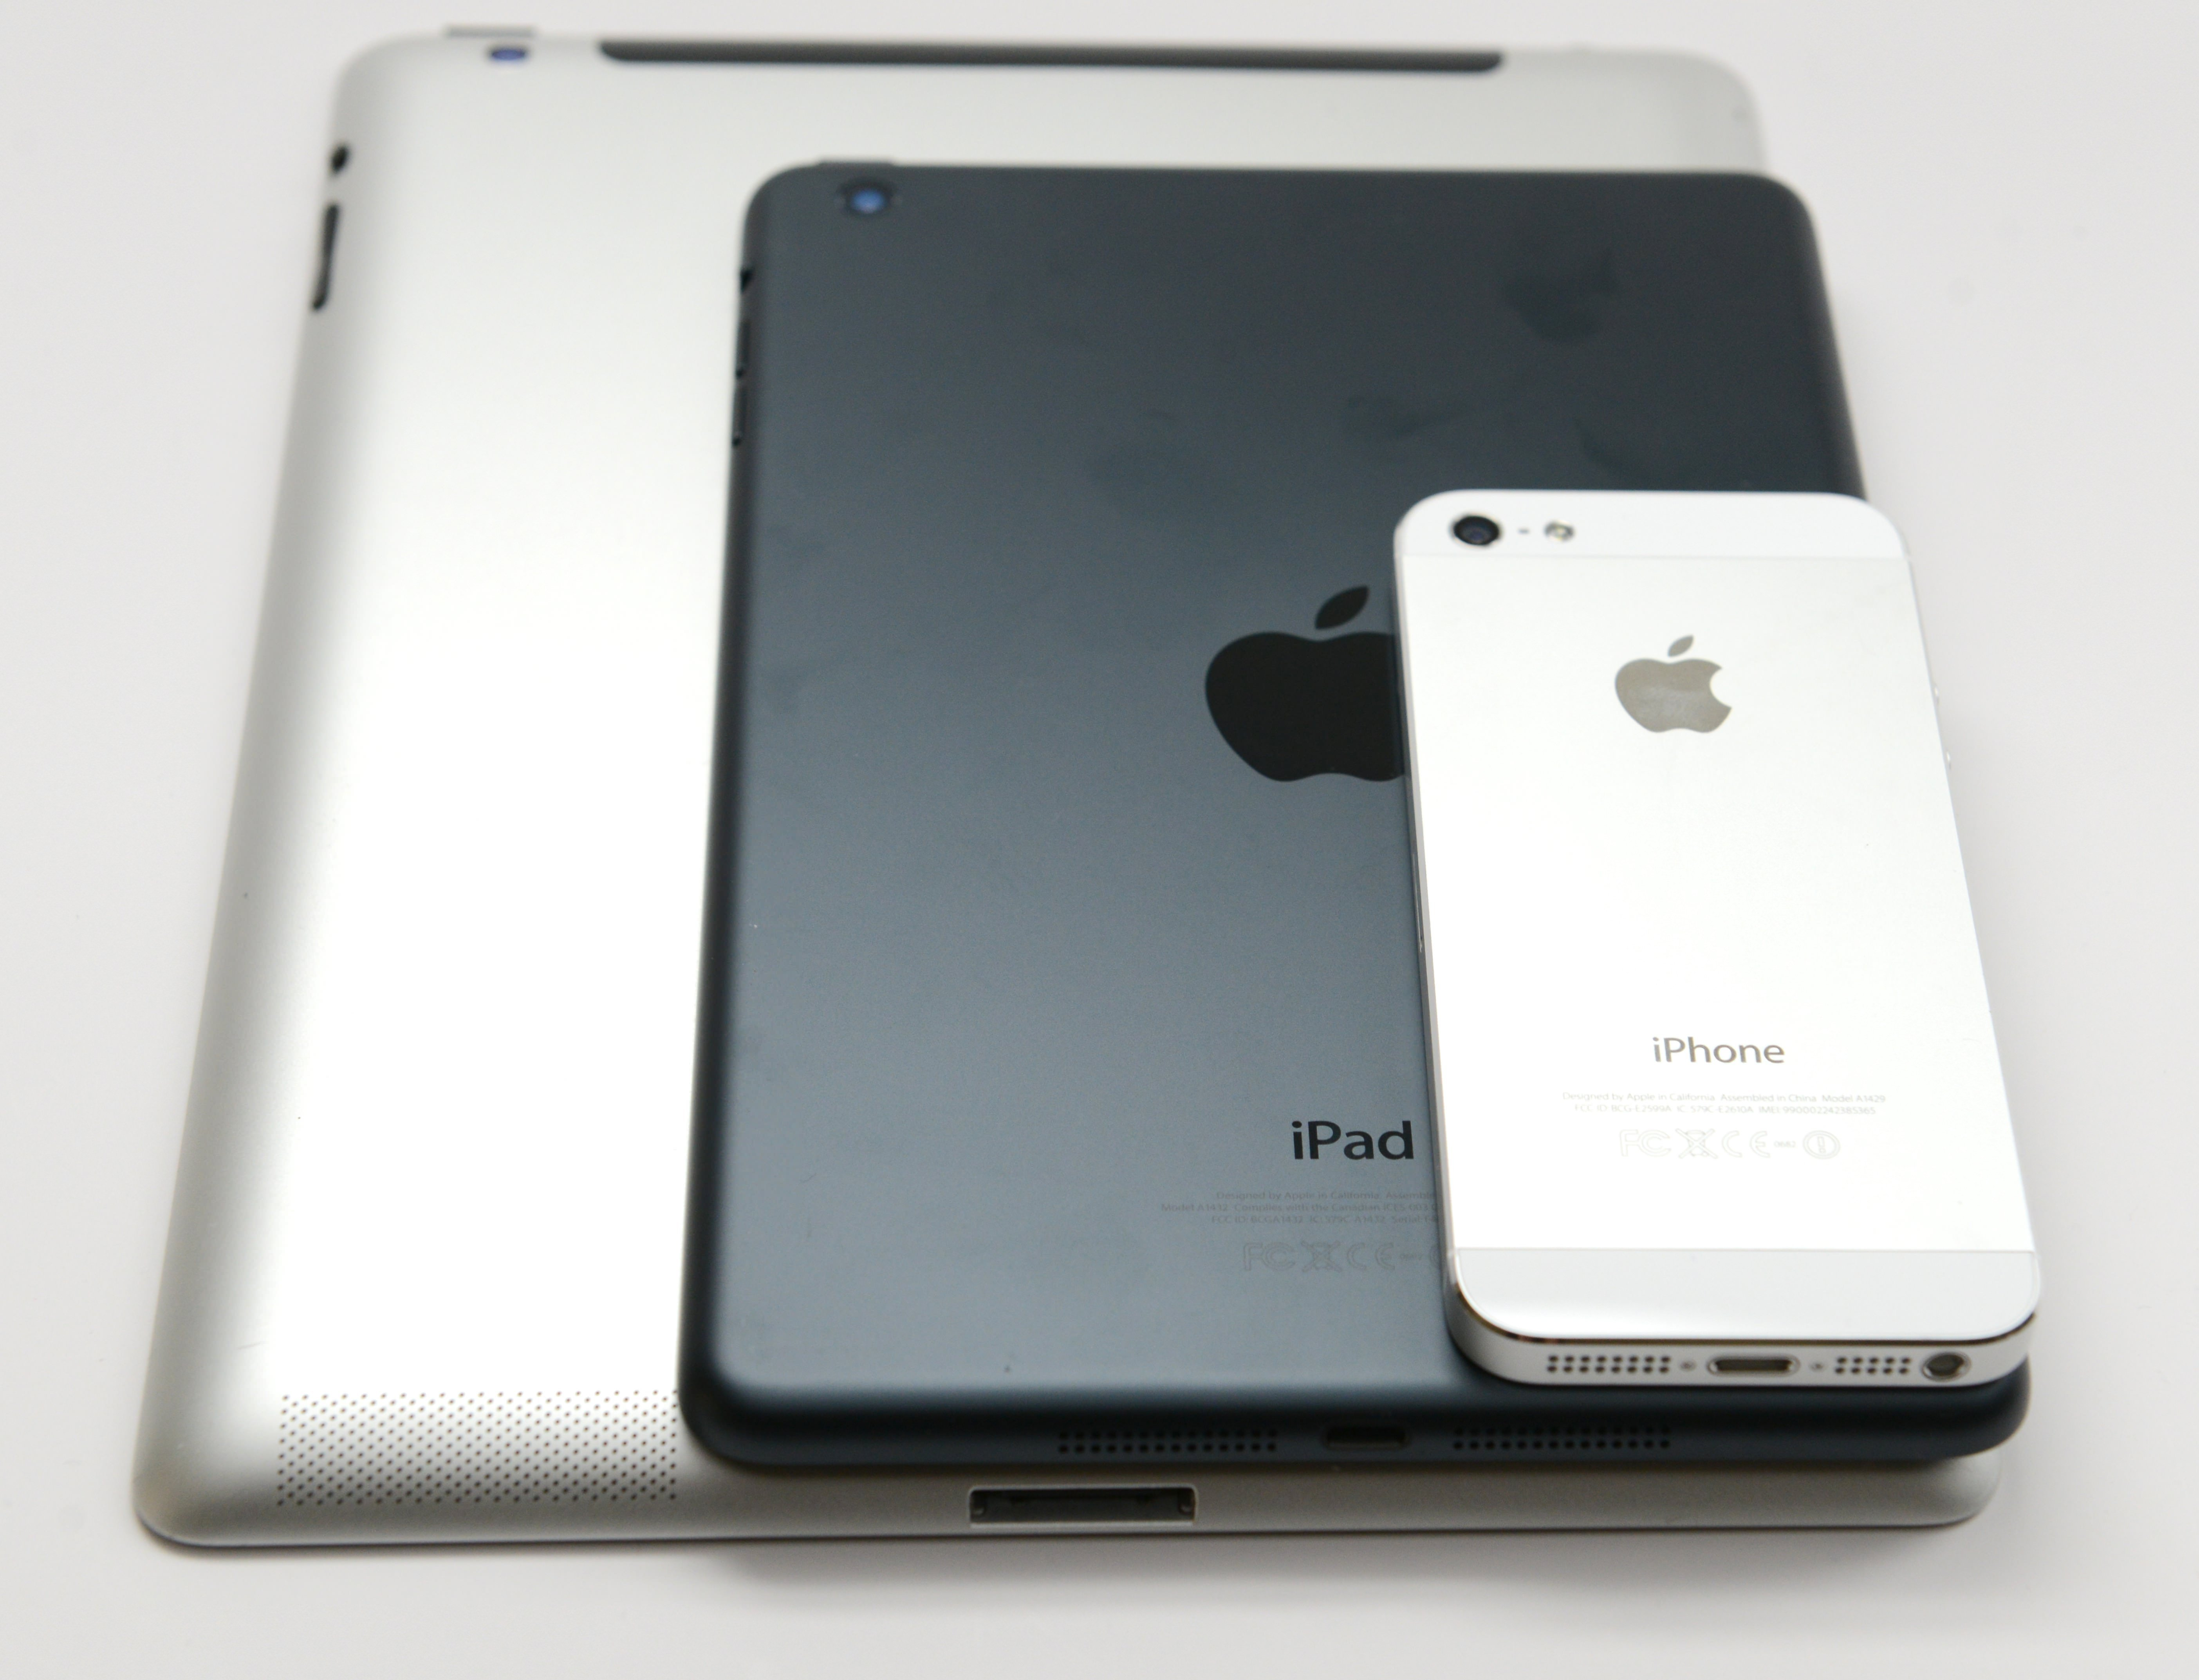 Apple may unveil new iPad on September 10, says Bloomberg